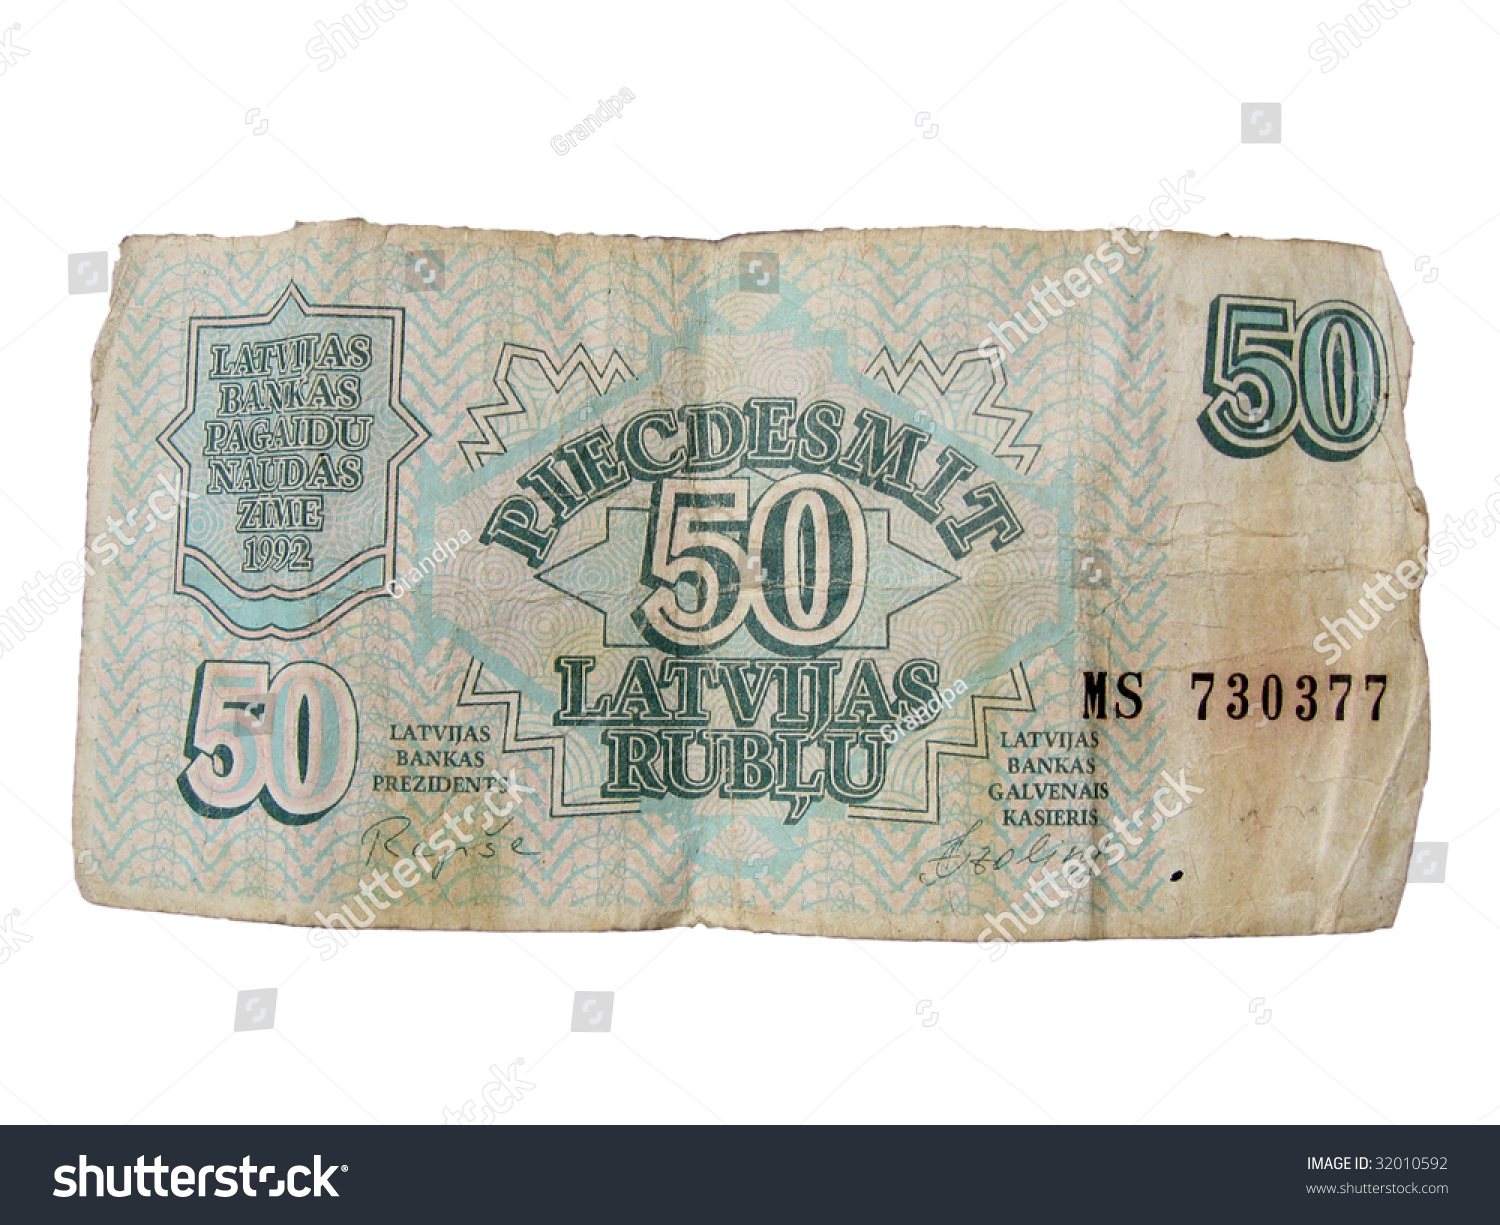 Latvia: Currency yesterday and today